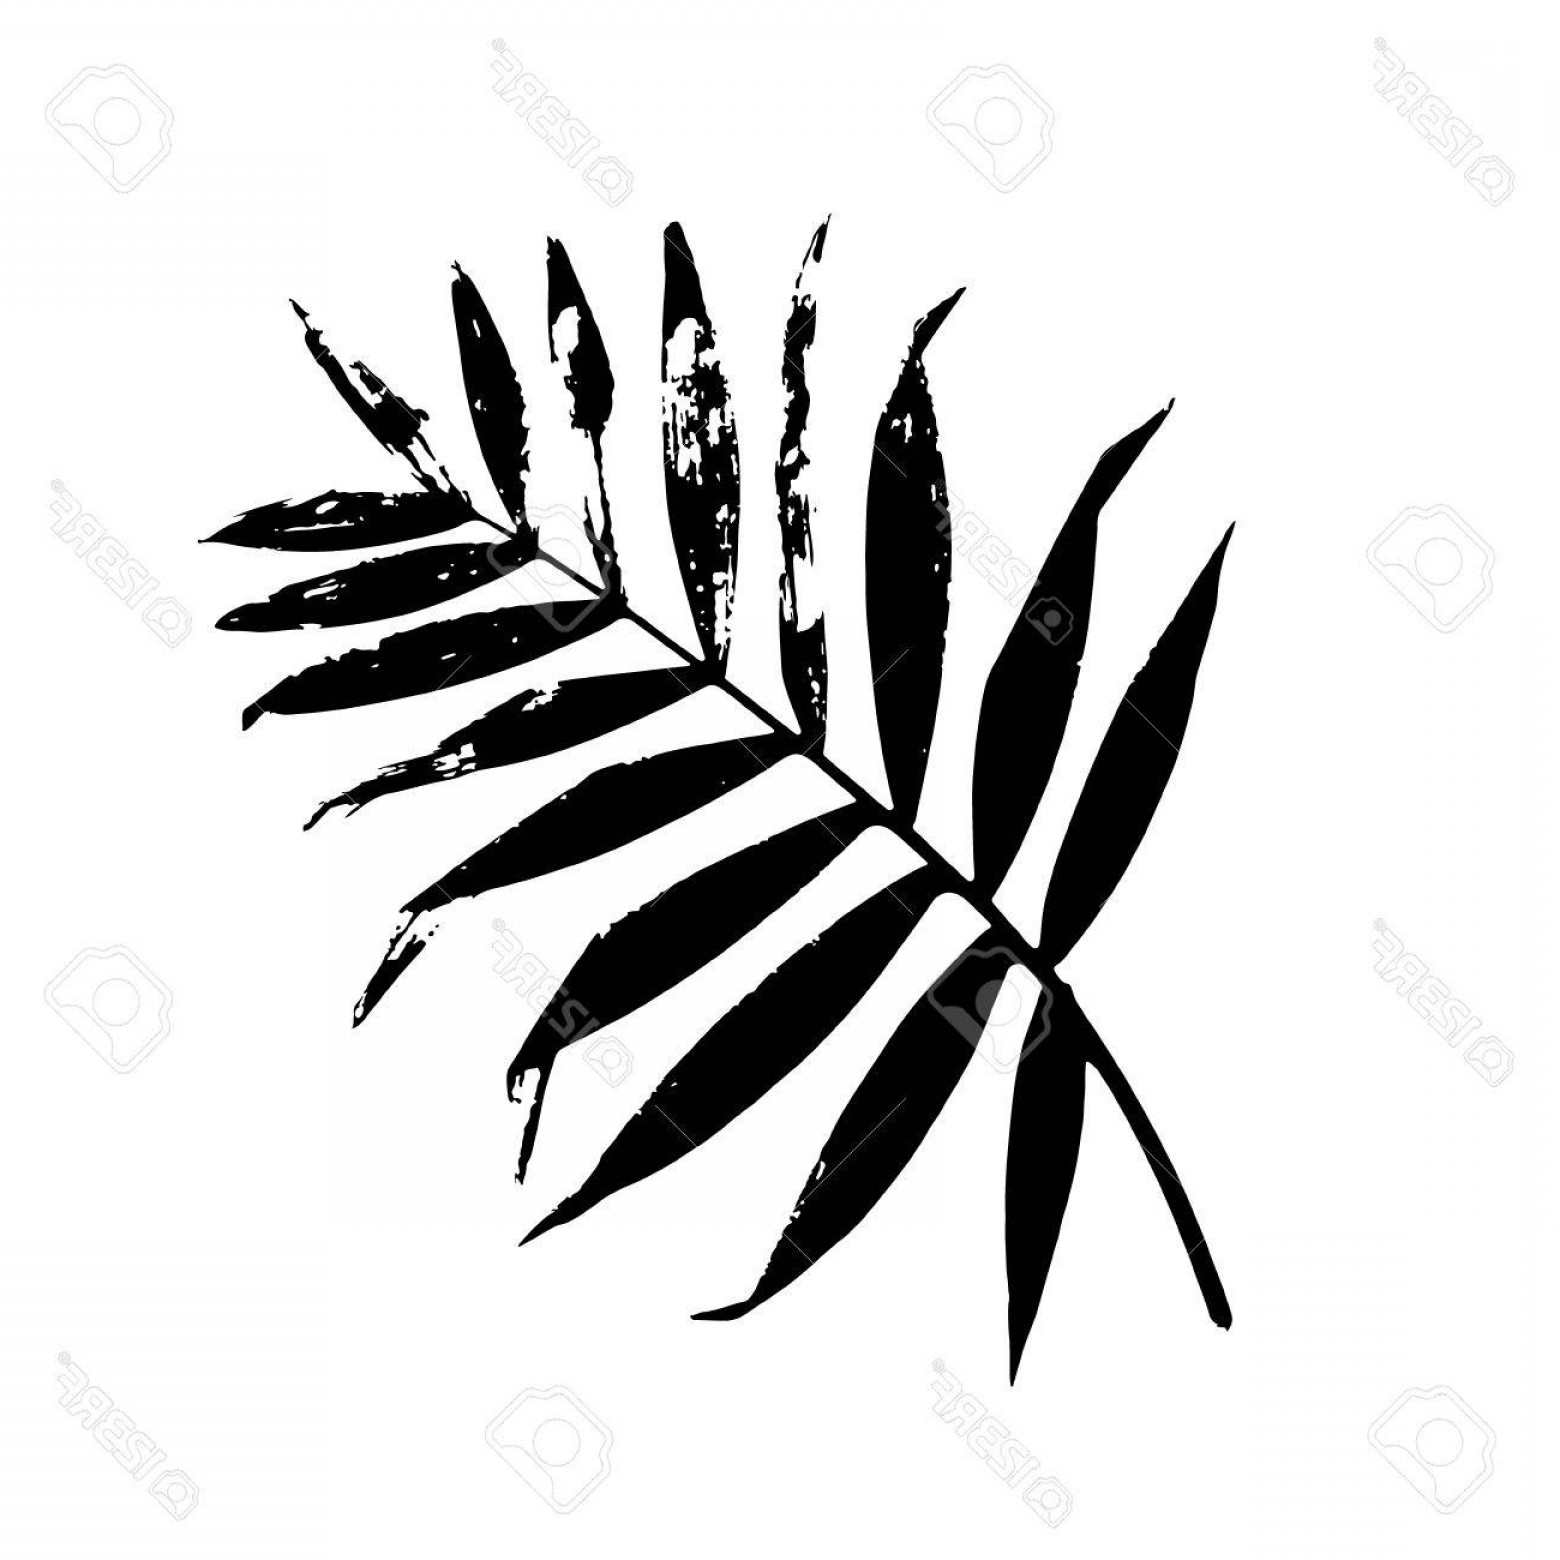 Banana leaf clipart black and white clip art royalty free stock Photostock Vector Palm Leaf Vector Illustration Black And White Palm ... clip art royalty free stock